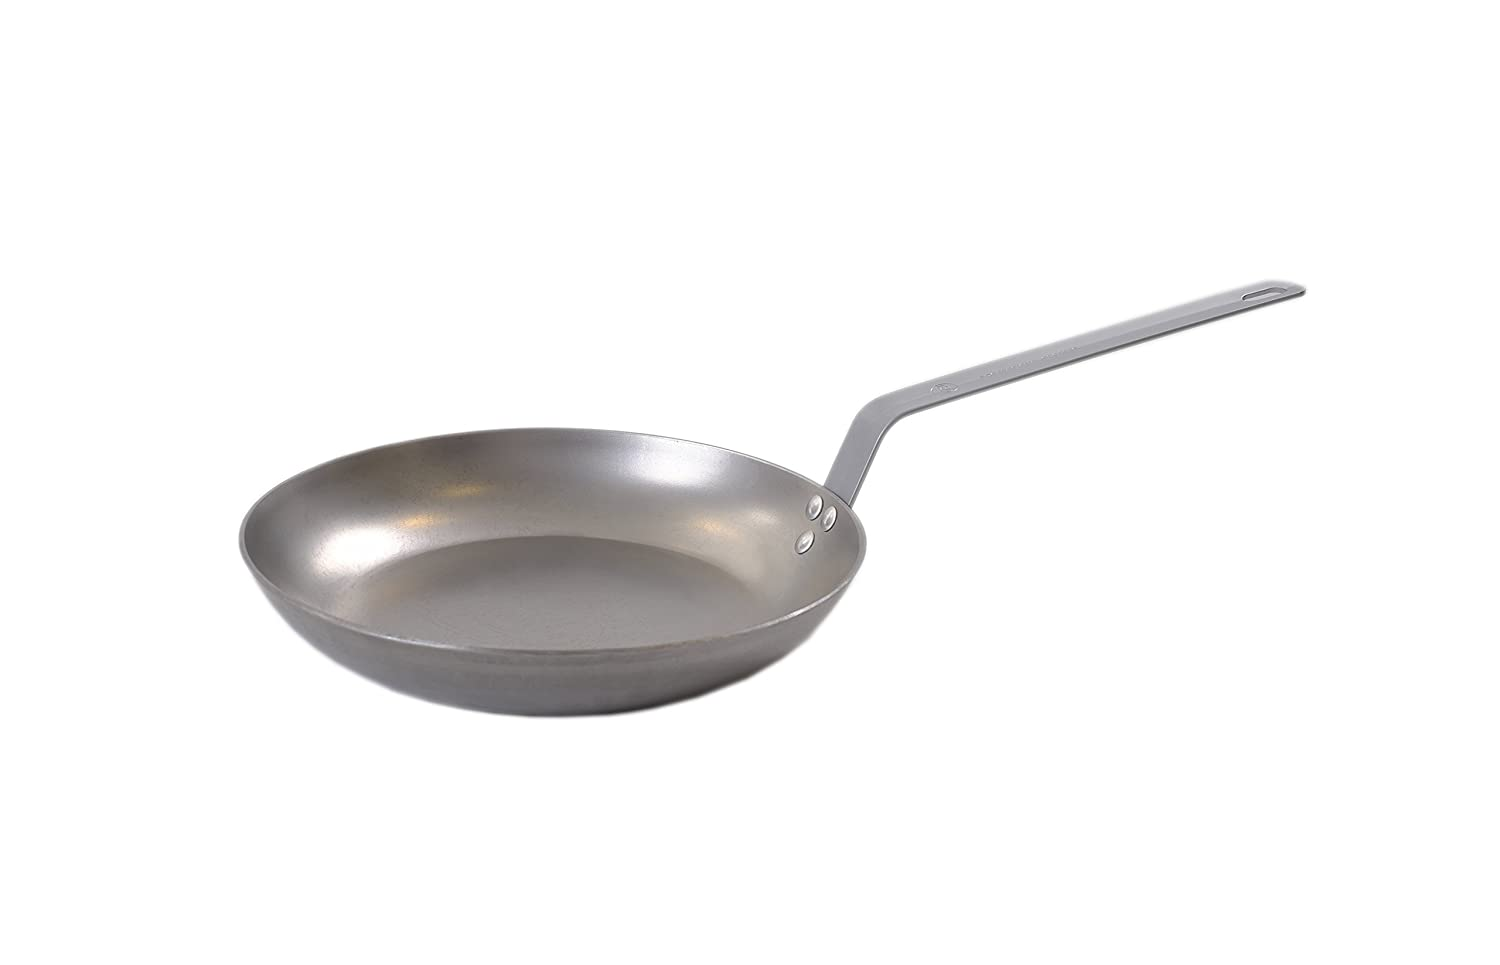 Professional Secrets - Chef Large Frying Pan - Carbon Steel - Ovenproof - High Steady Heat